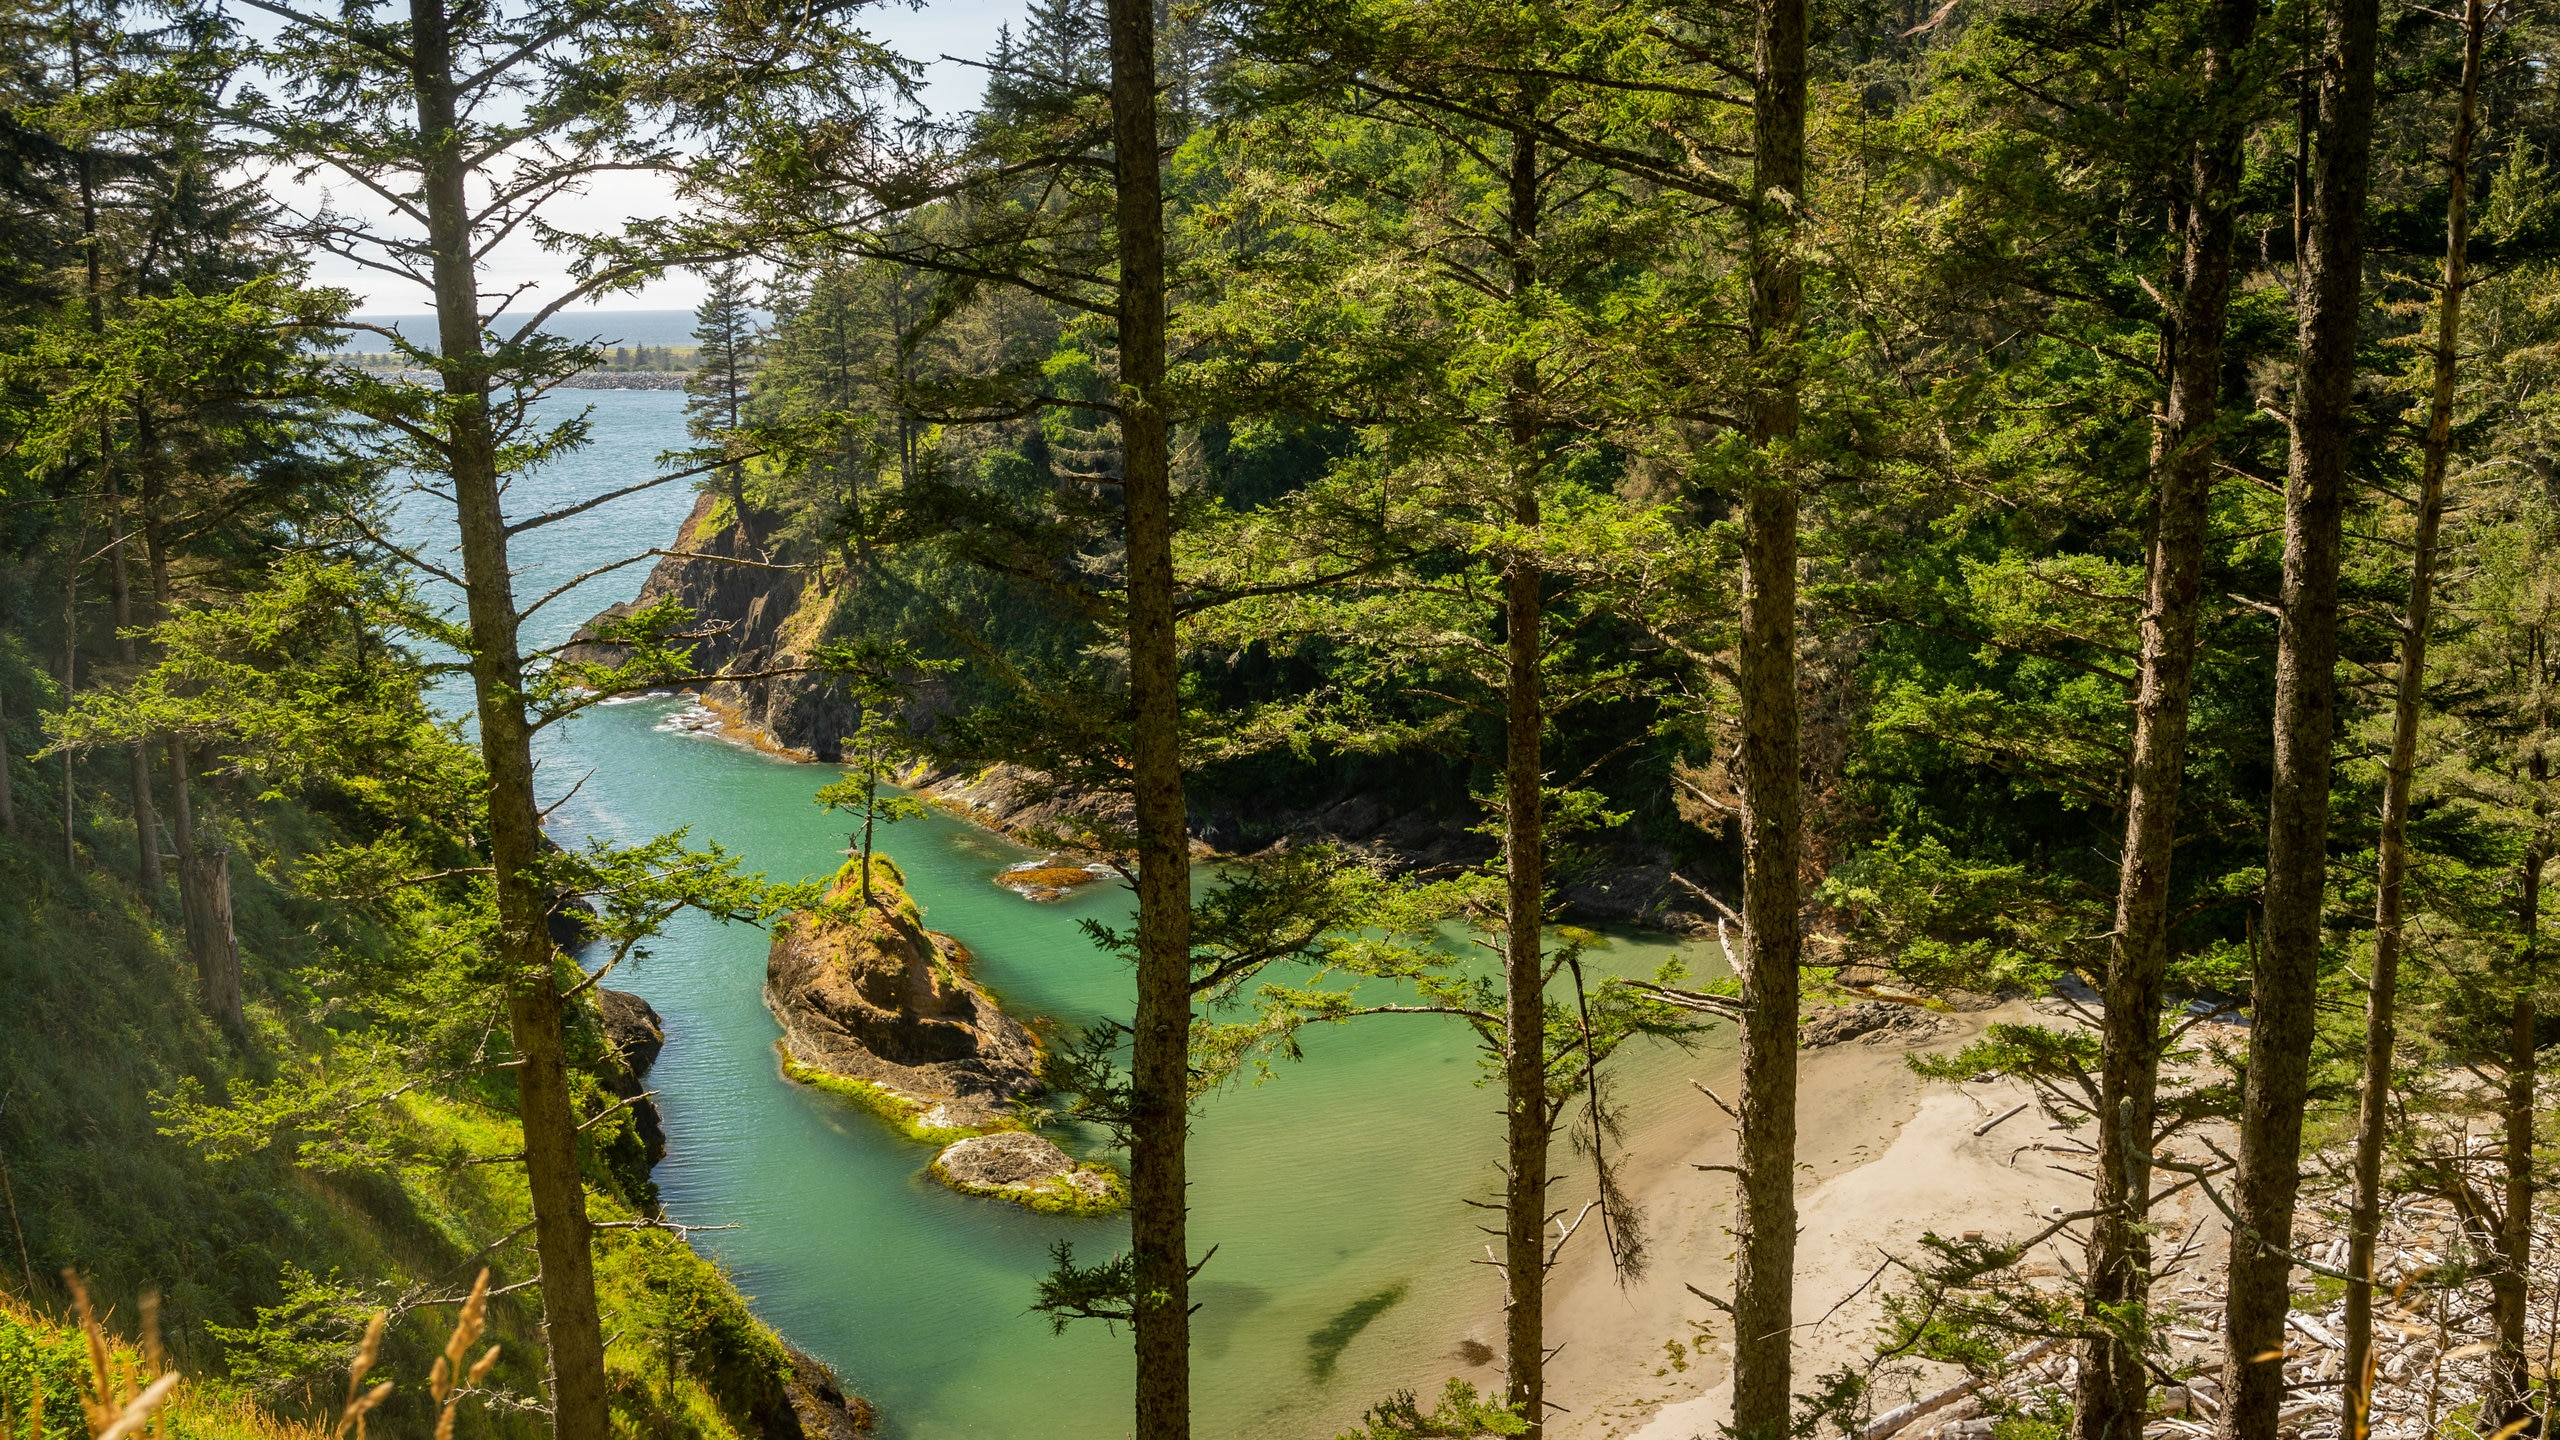 Build sandcastles, hike along the beach, launch a boat or dig for clams at this Pacific Northwest park that is much better than its depressing name.